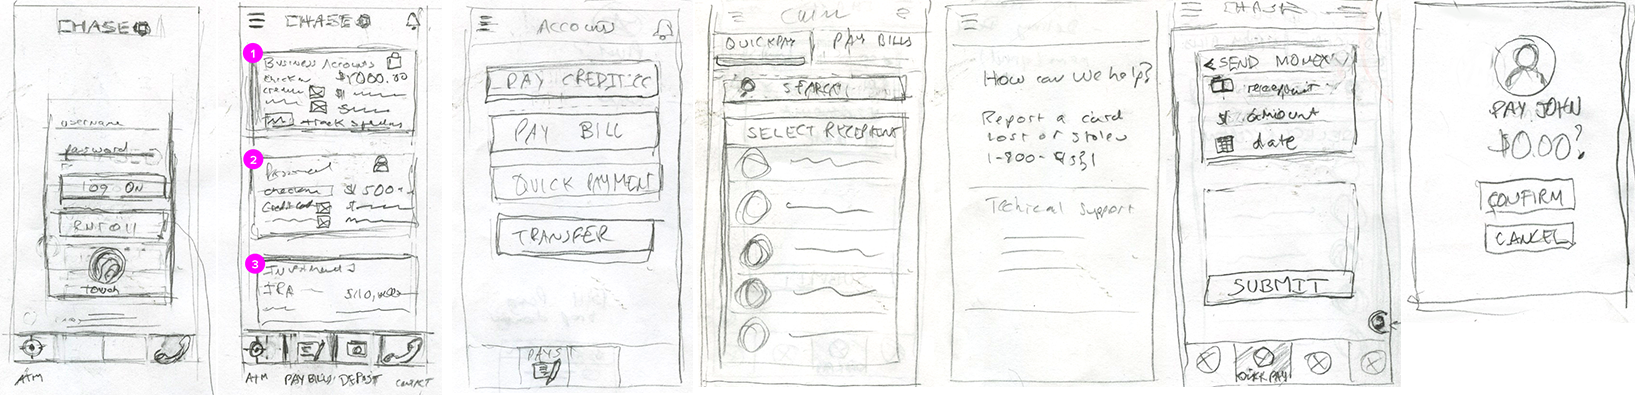 Chase wireframe sketches